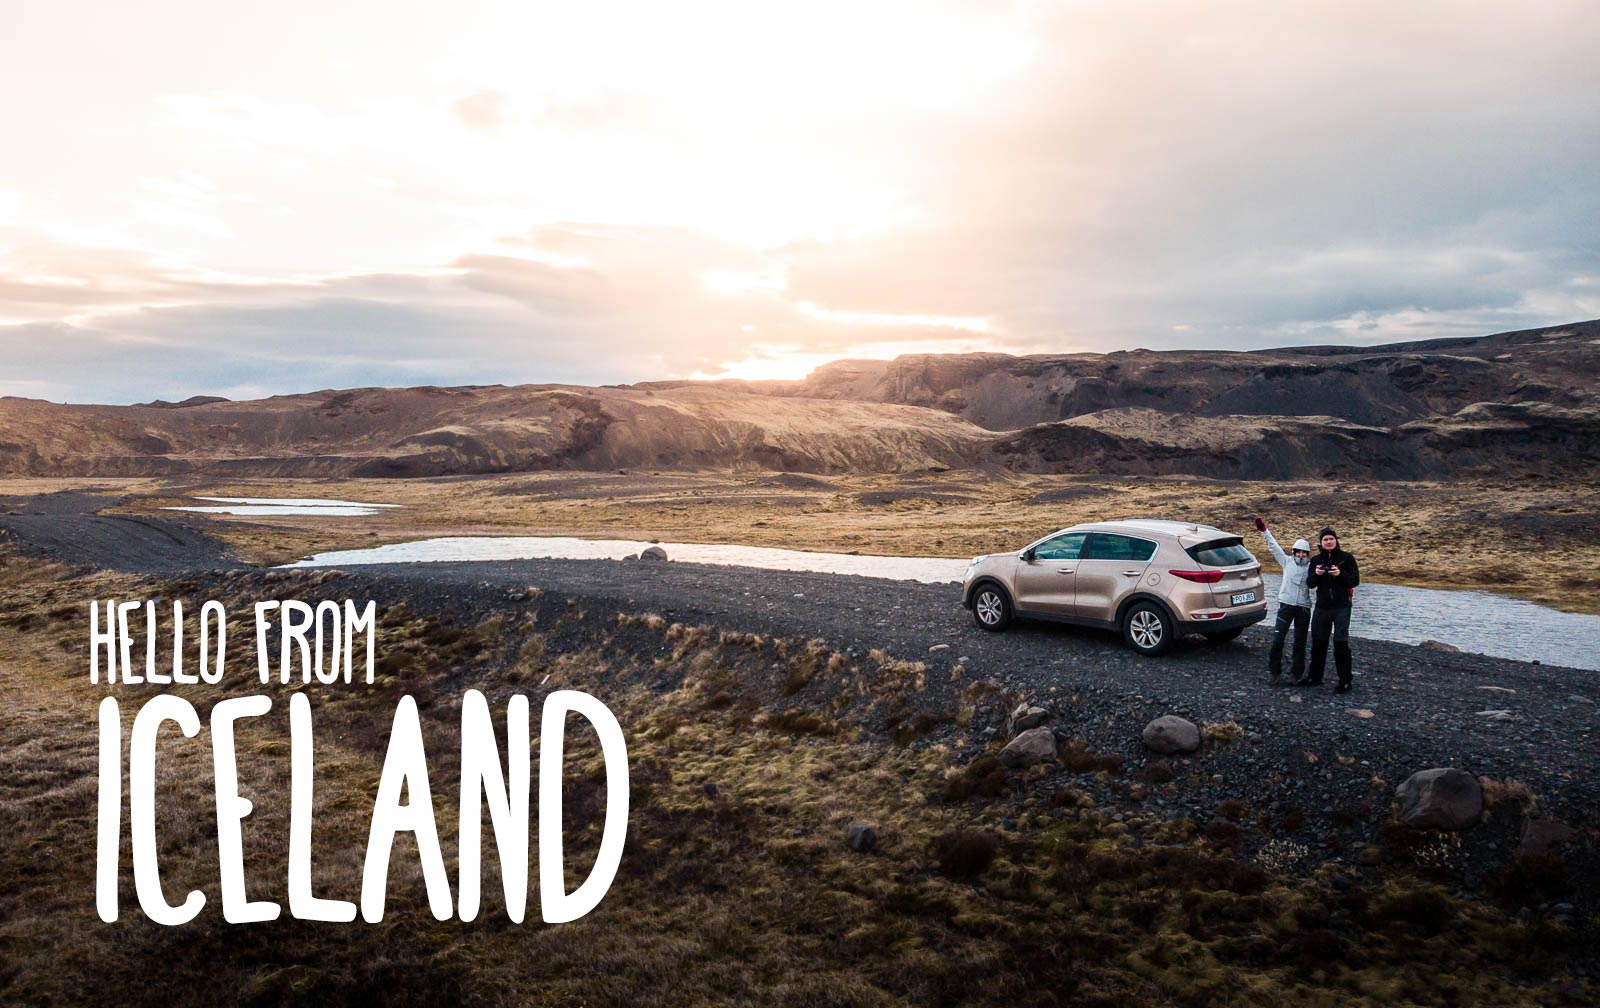 Hello from Iceland! — picjumbo BLOG